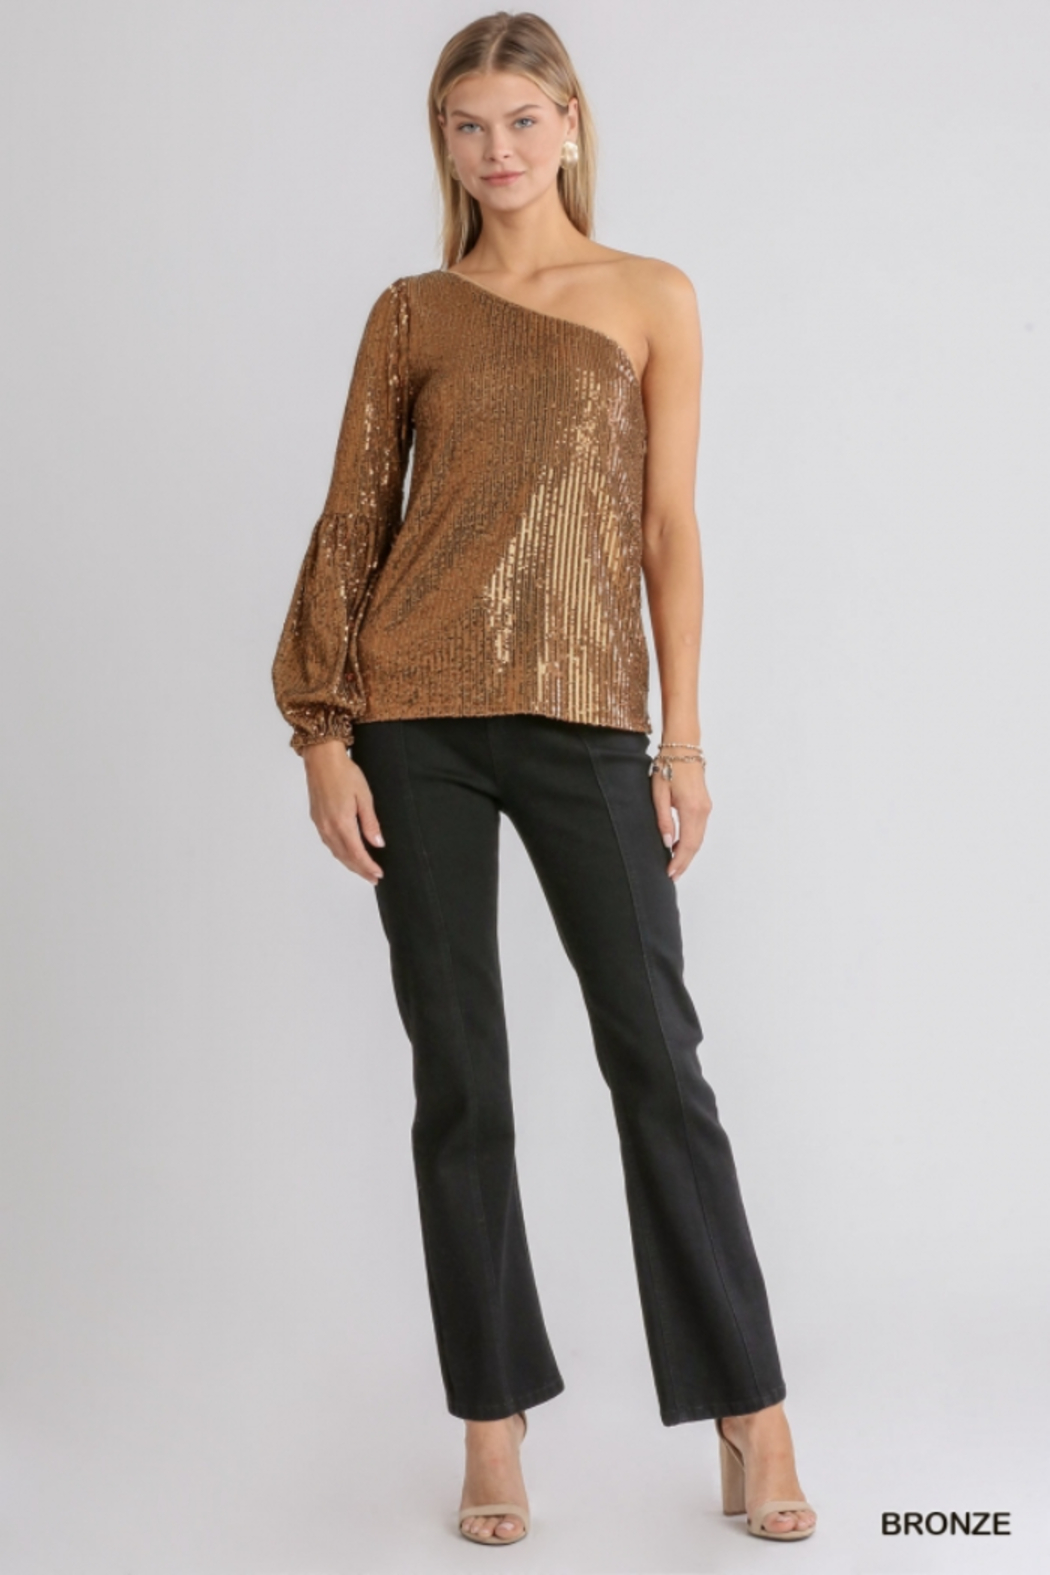 umgee  One shoulder Sequin Cocktail Top - Front Full Image